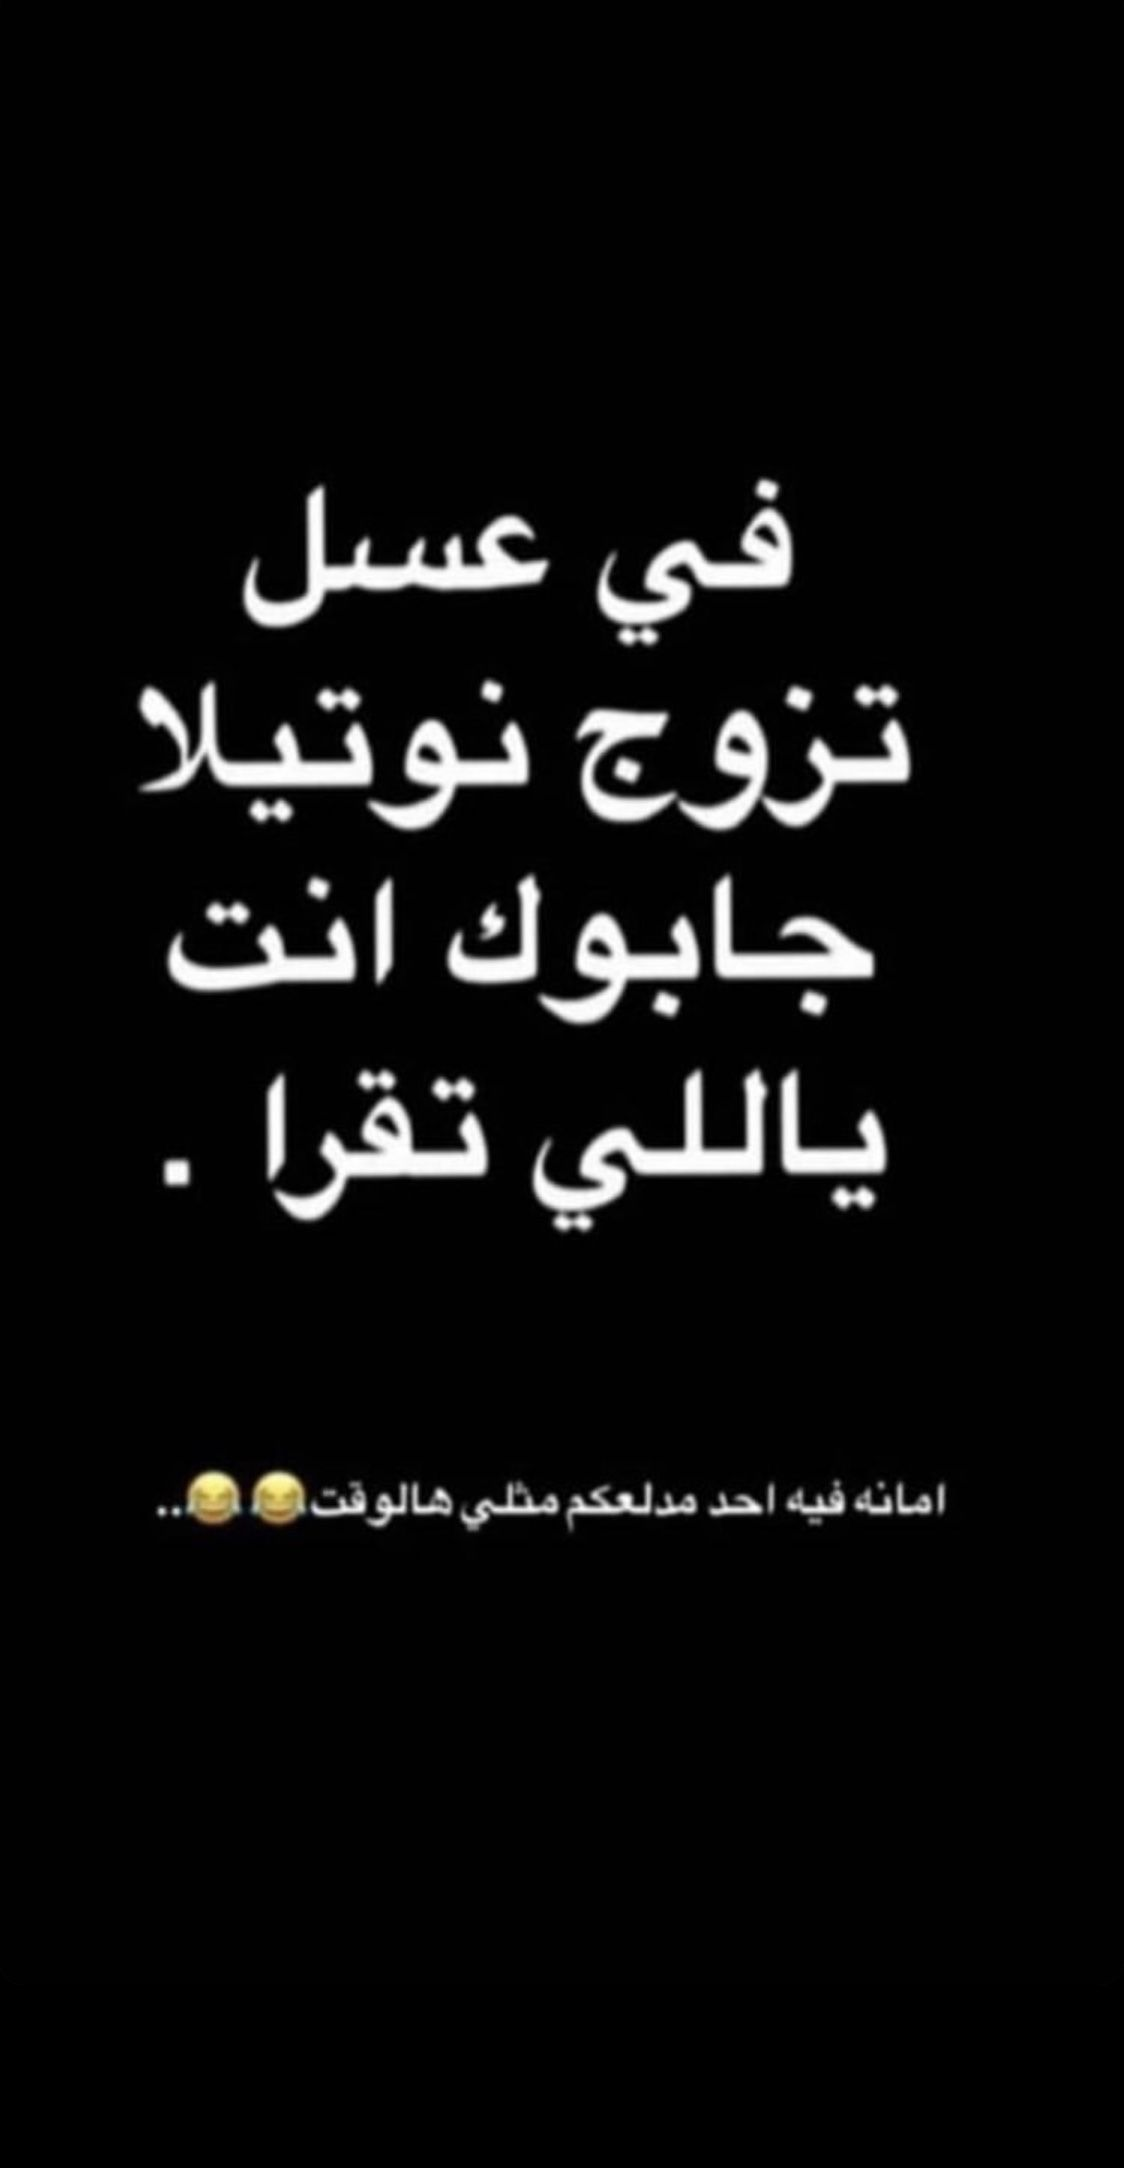 Pin By Sally Salha On ابتسموا ي جميلين Funny Arabic Quotes Jokes Quotes Funny Quotes